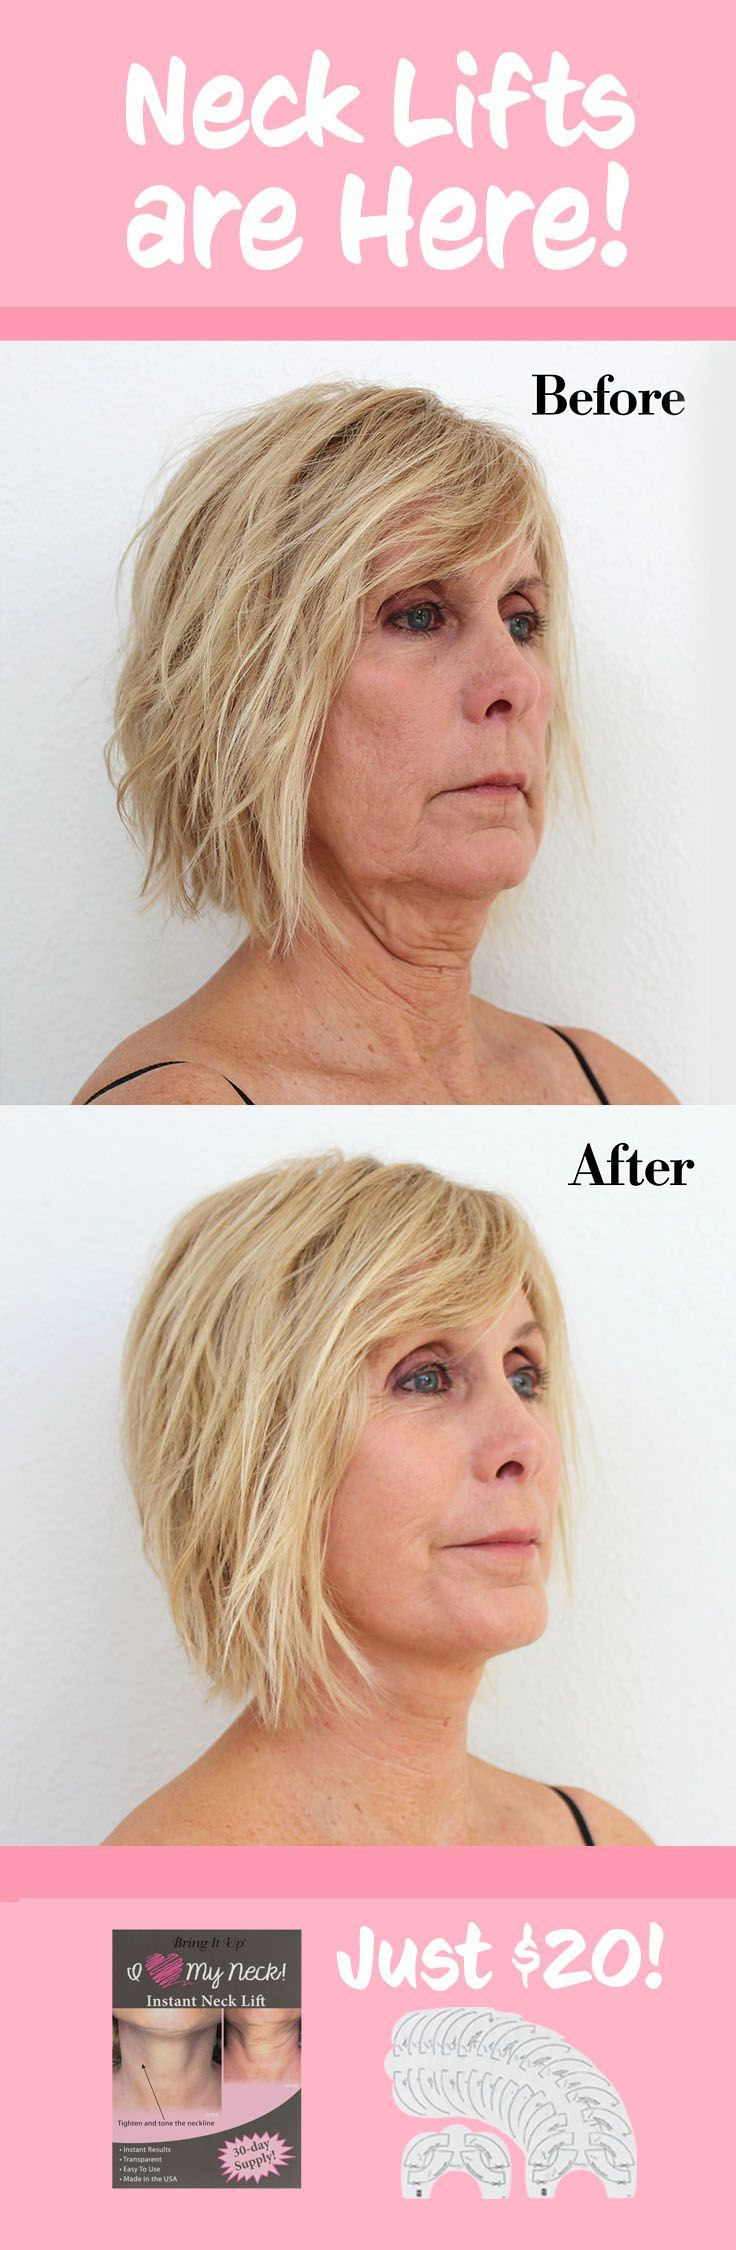 Neck Lifts are Here! And they're just $20 for 16 pairs! Don't waste your